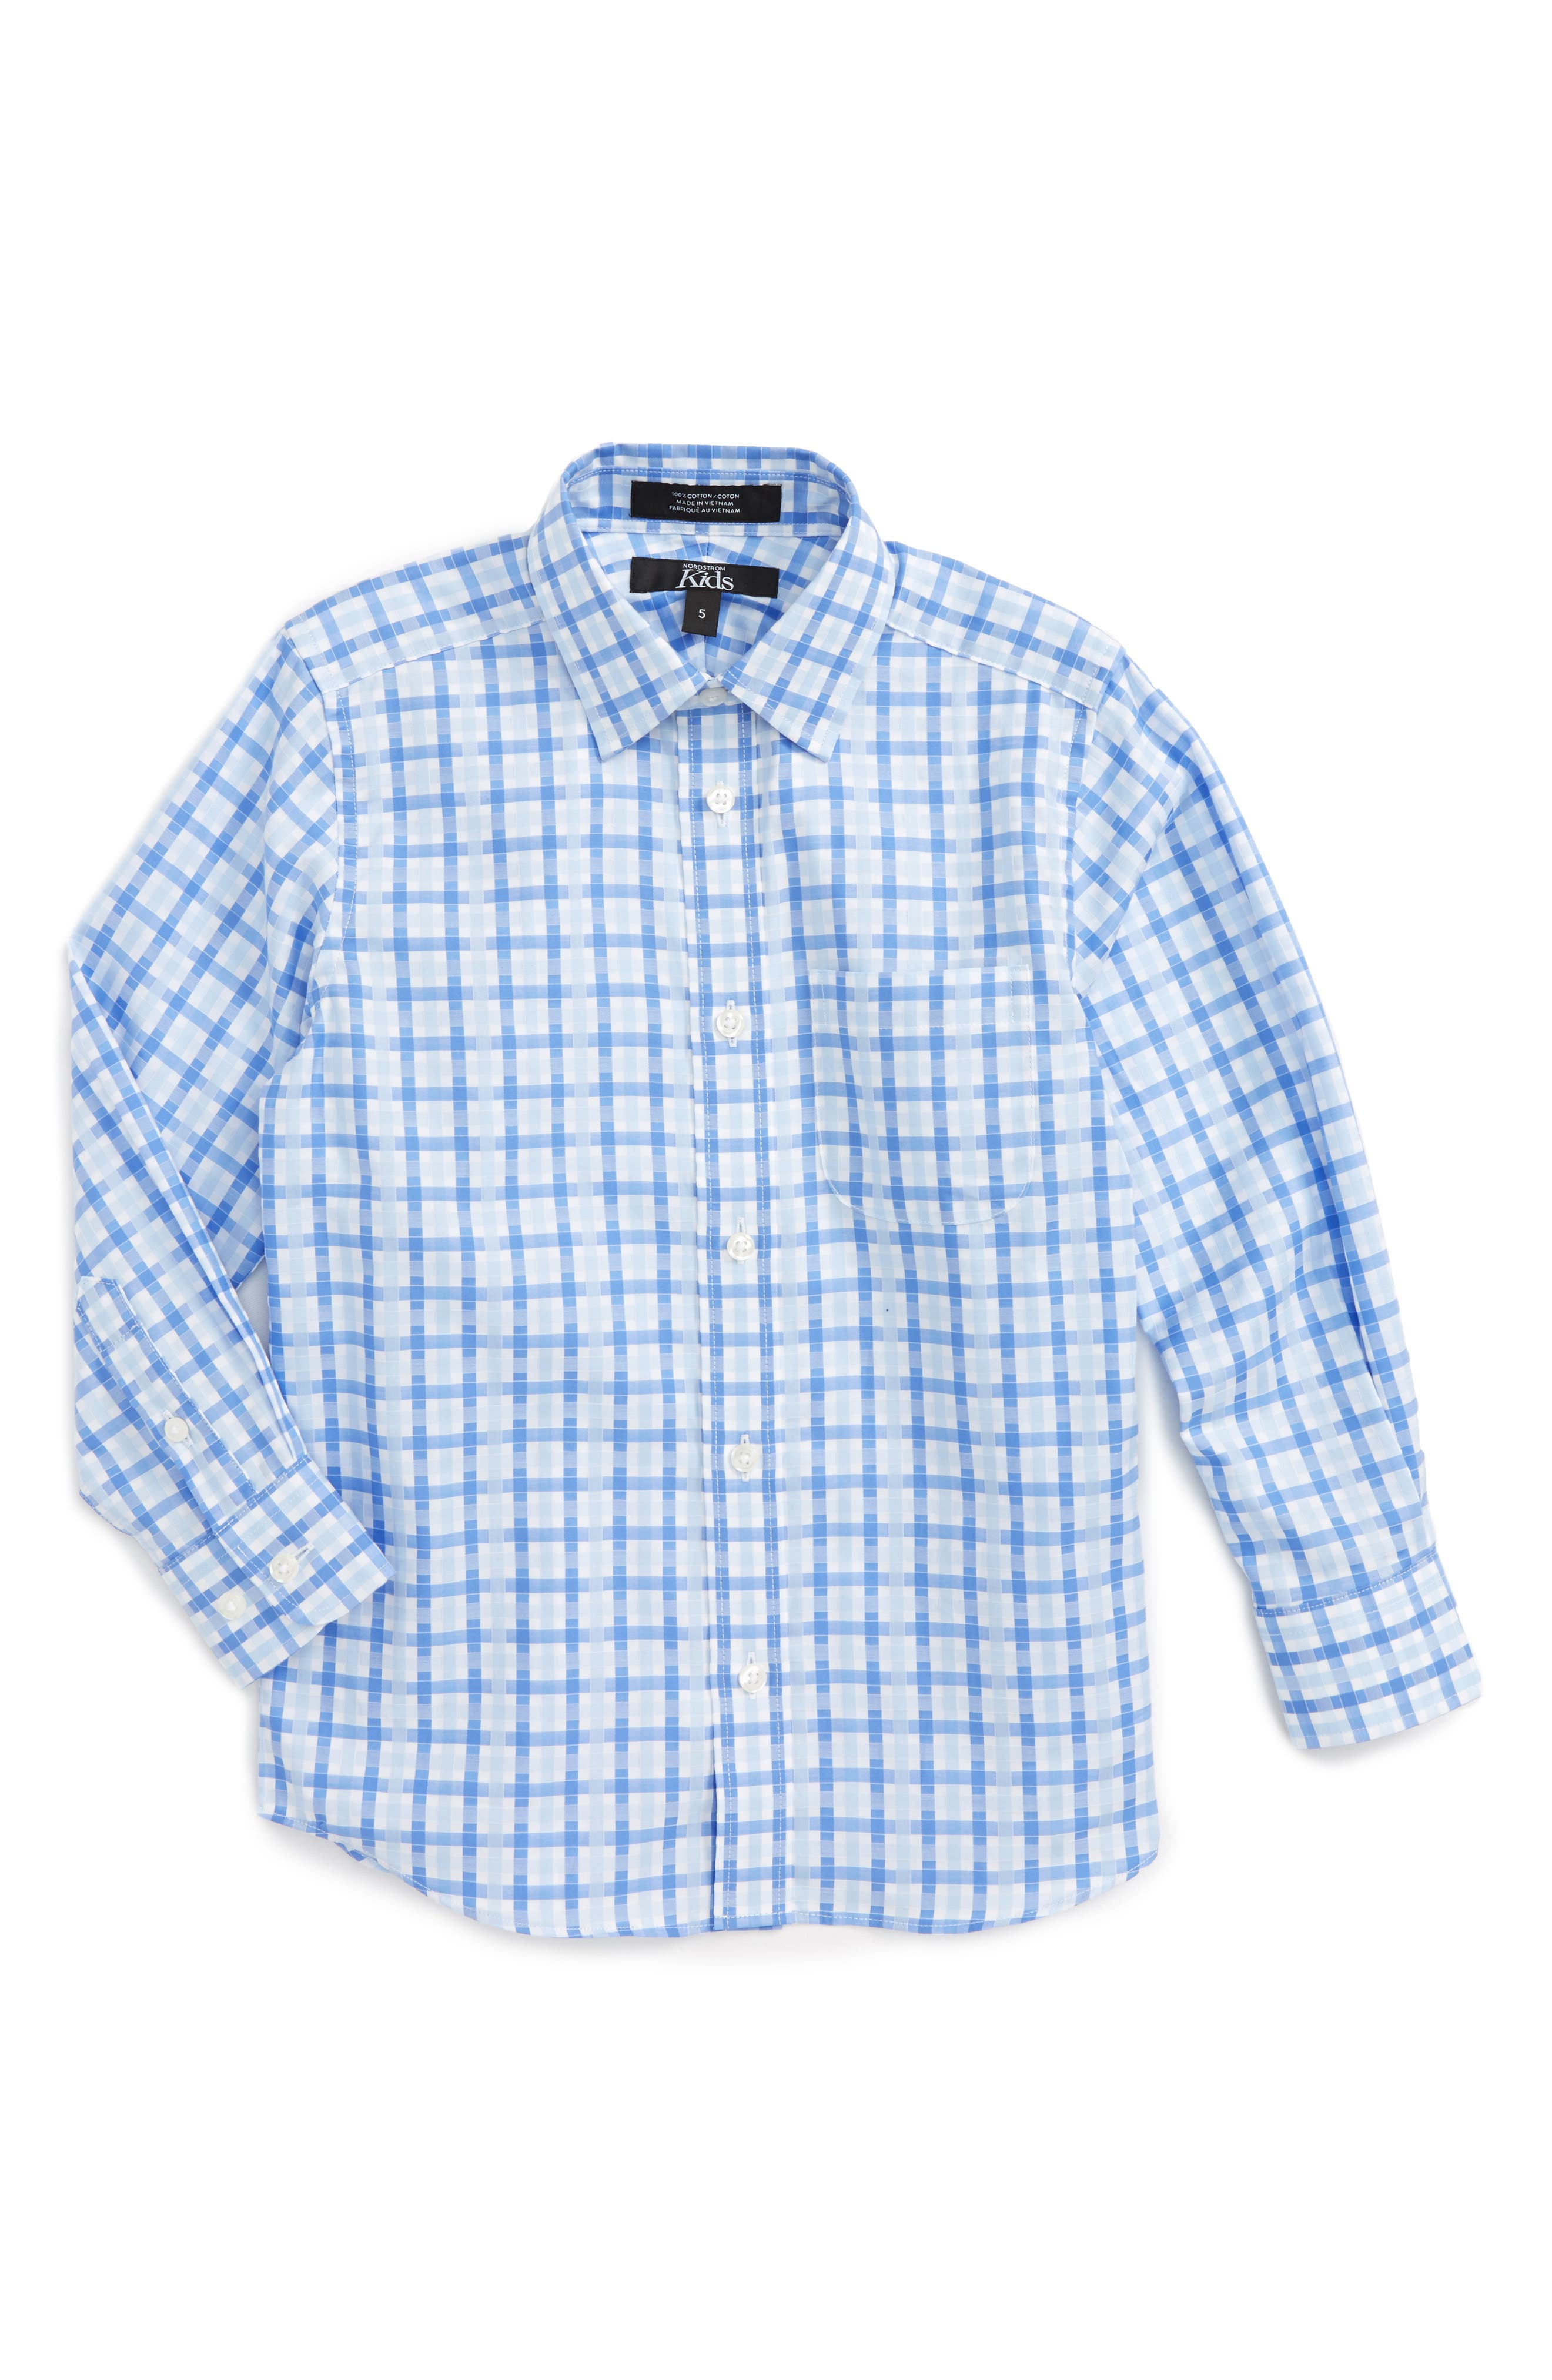 Nordstrom Kids Blue Haze Plaid Dress Shirt (Toddler Boys & Little Boys)